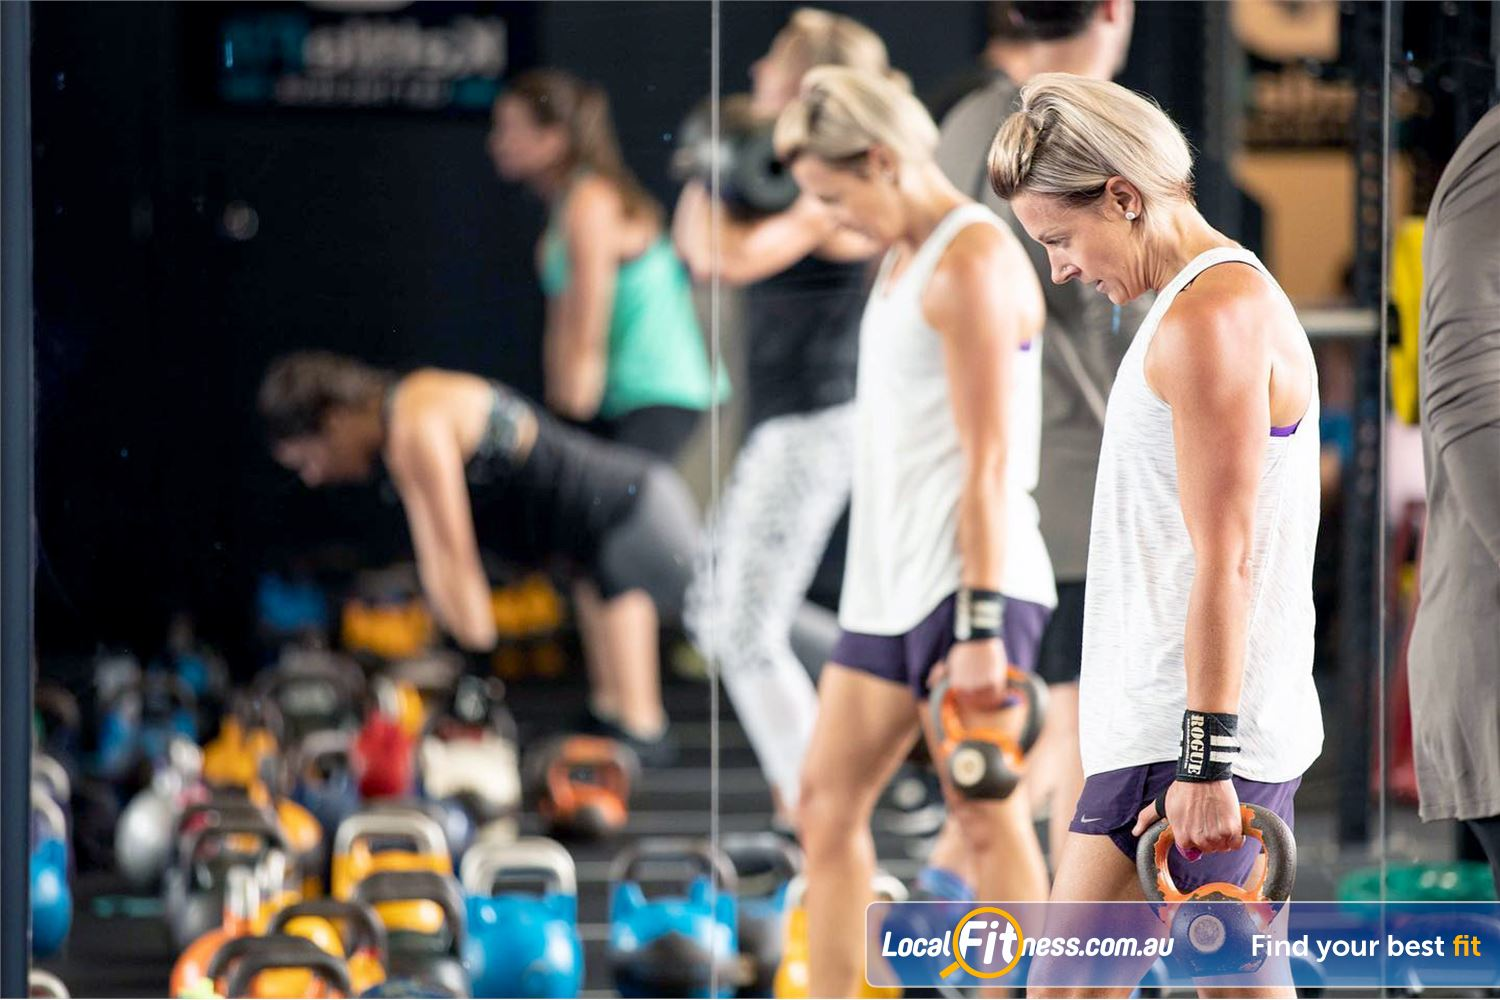 KettleFit Windsor At KettleFit we think differently, so we can challenge you in different ways.